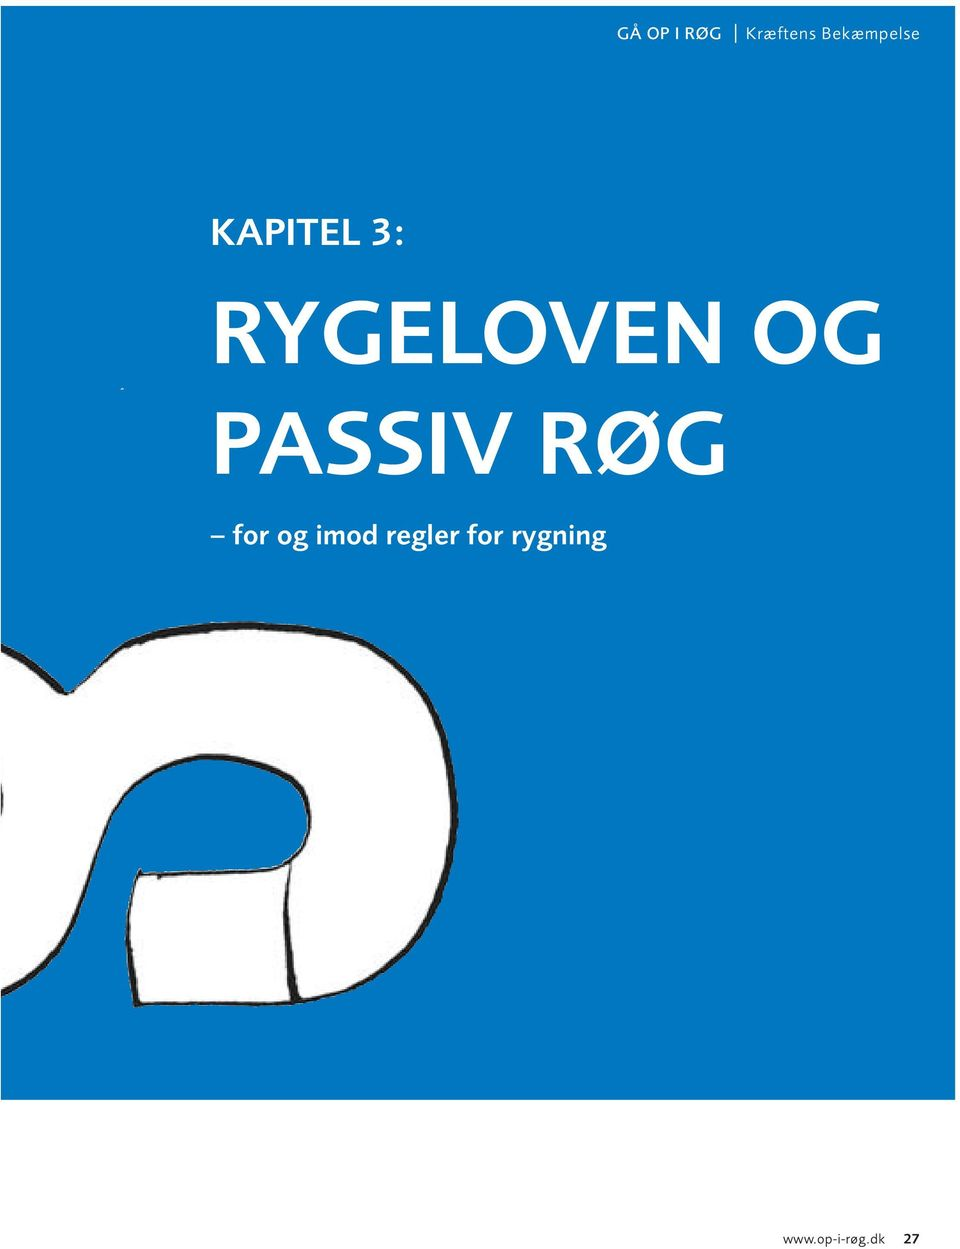 RYGELOVEN OG PASSIV RØG for